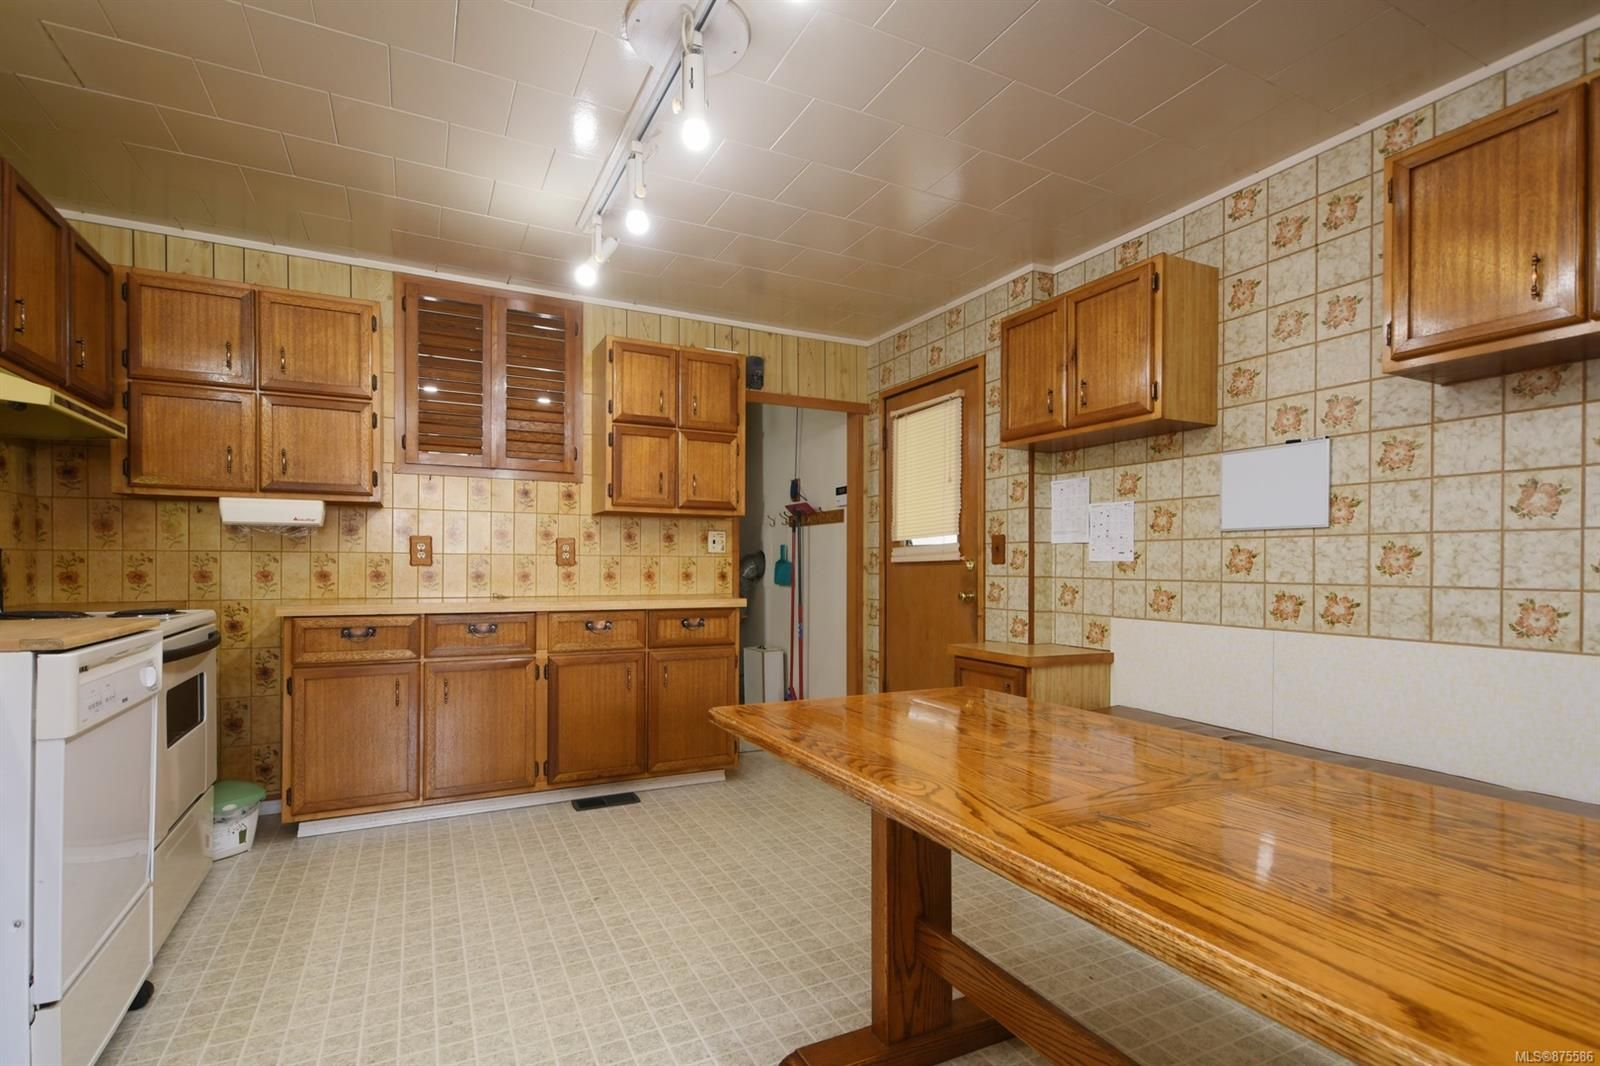 Photo 3: Photos: 55 Ontario St in : Vi James Bay House for sale (Victoria)  : MLS®# 875586